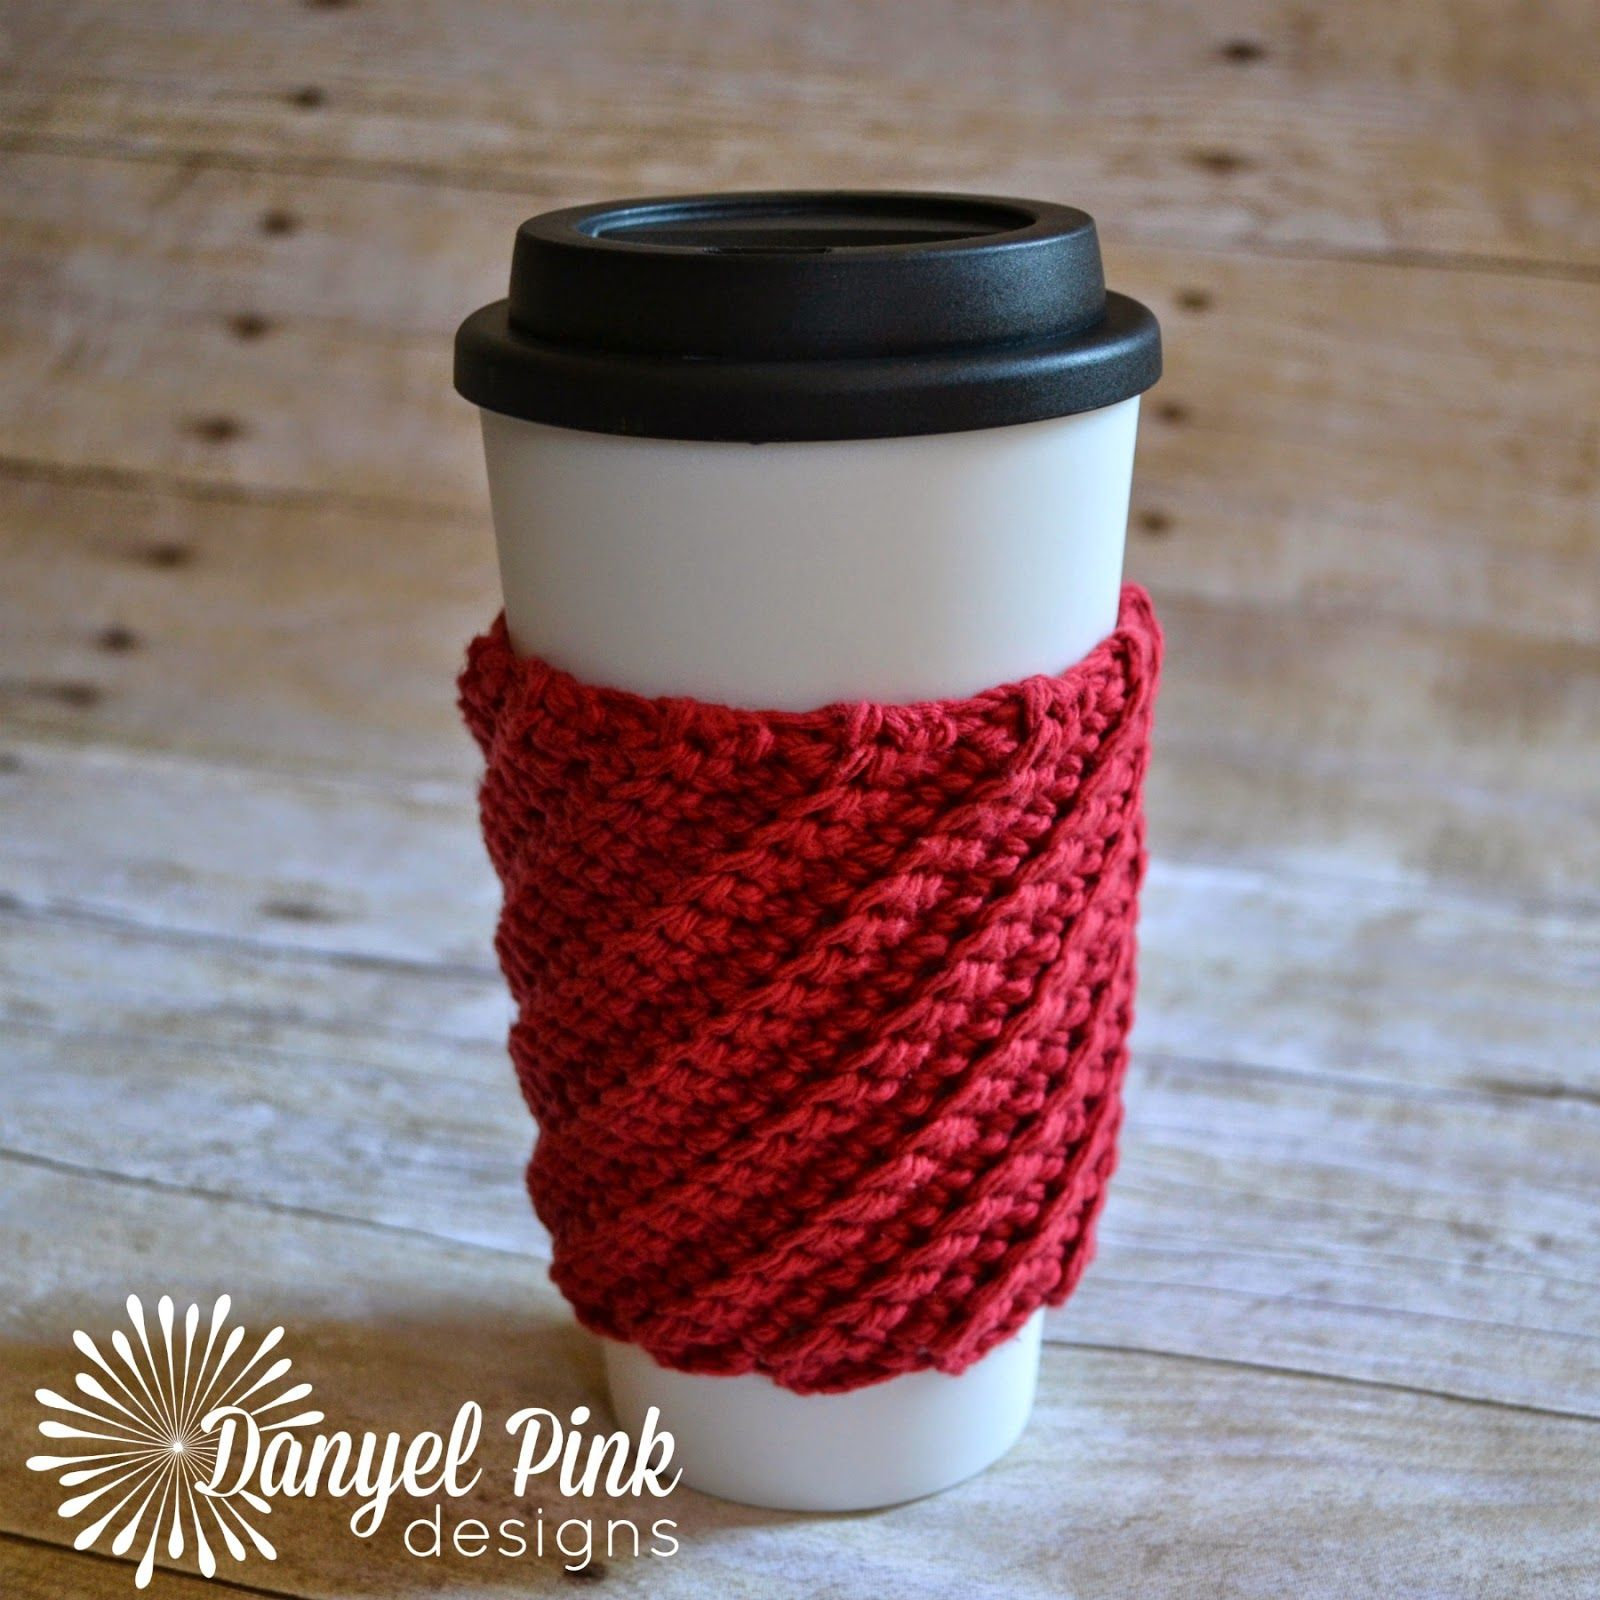 Danyel Pink Designs: Free Crochet Pattern - Crooked Coffee Cozy ...